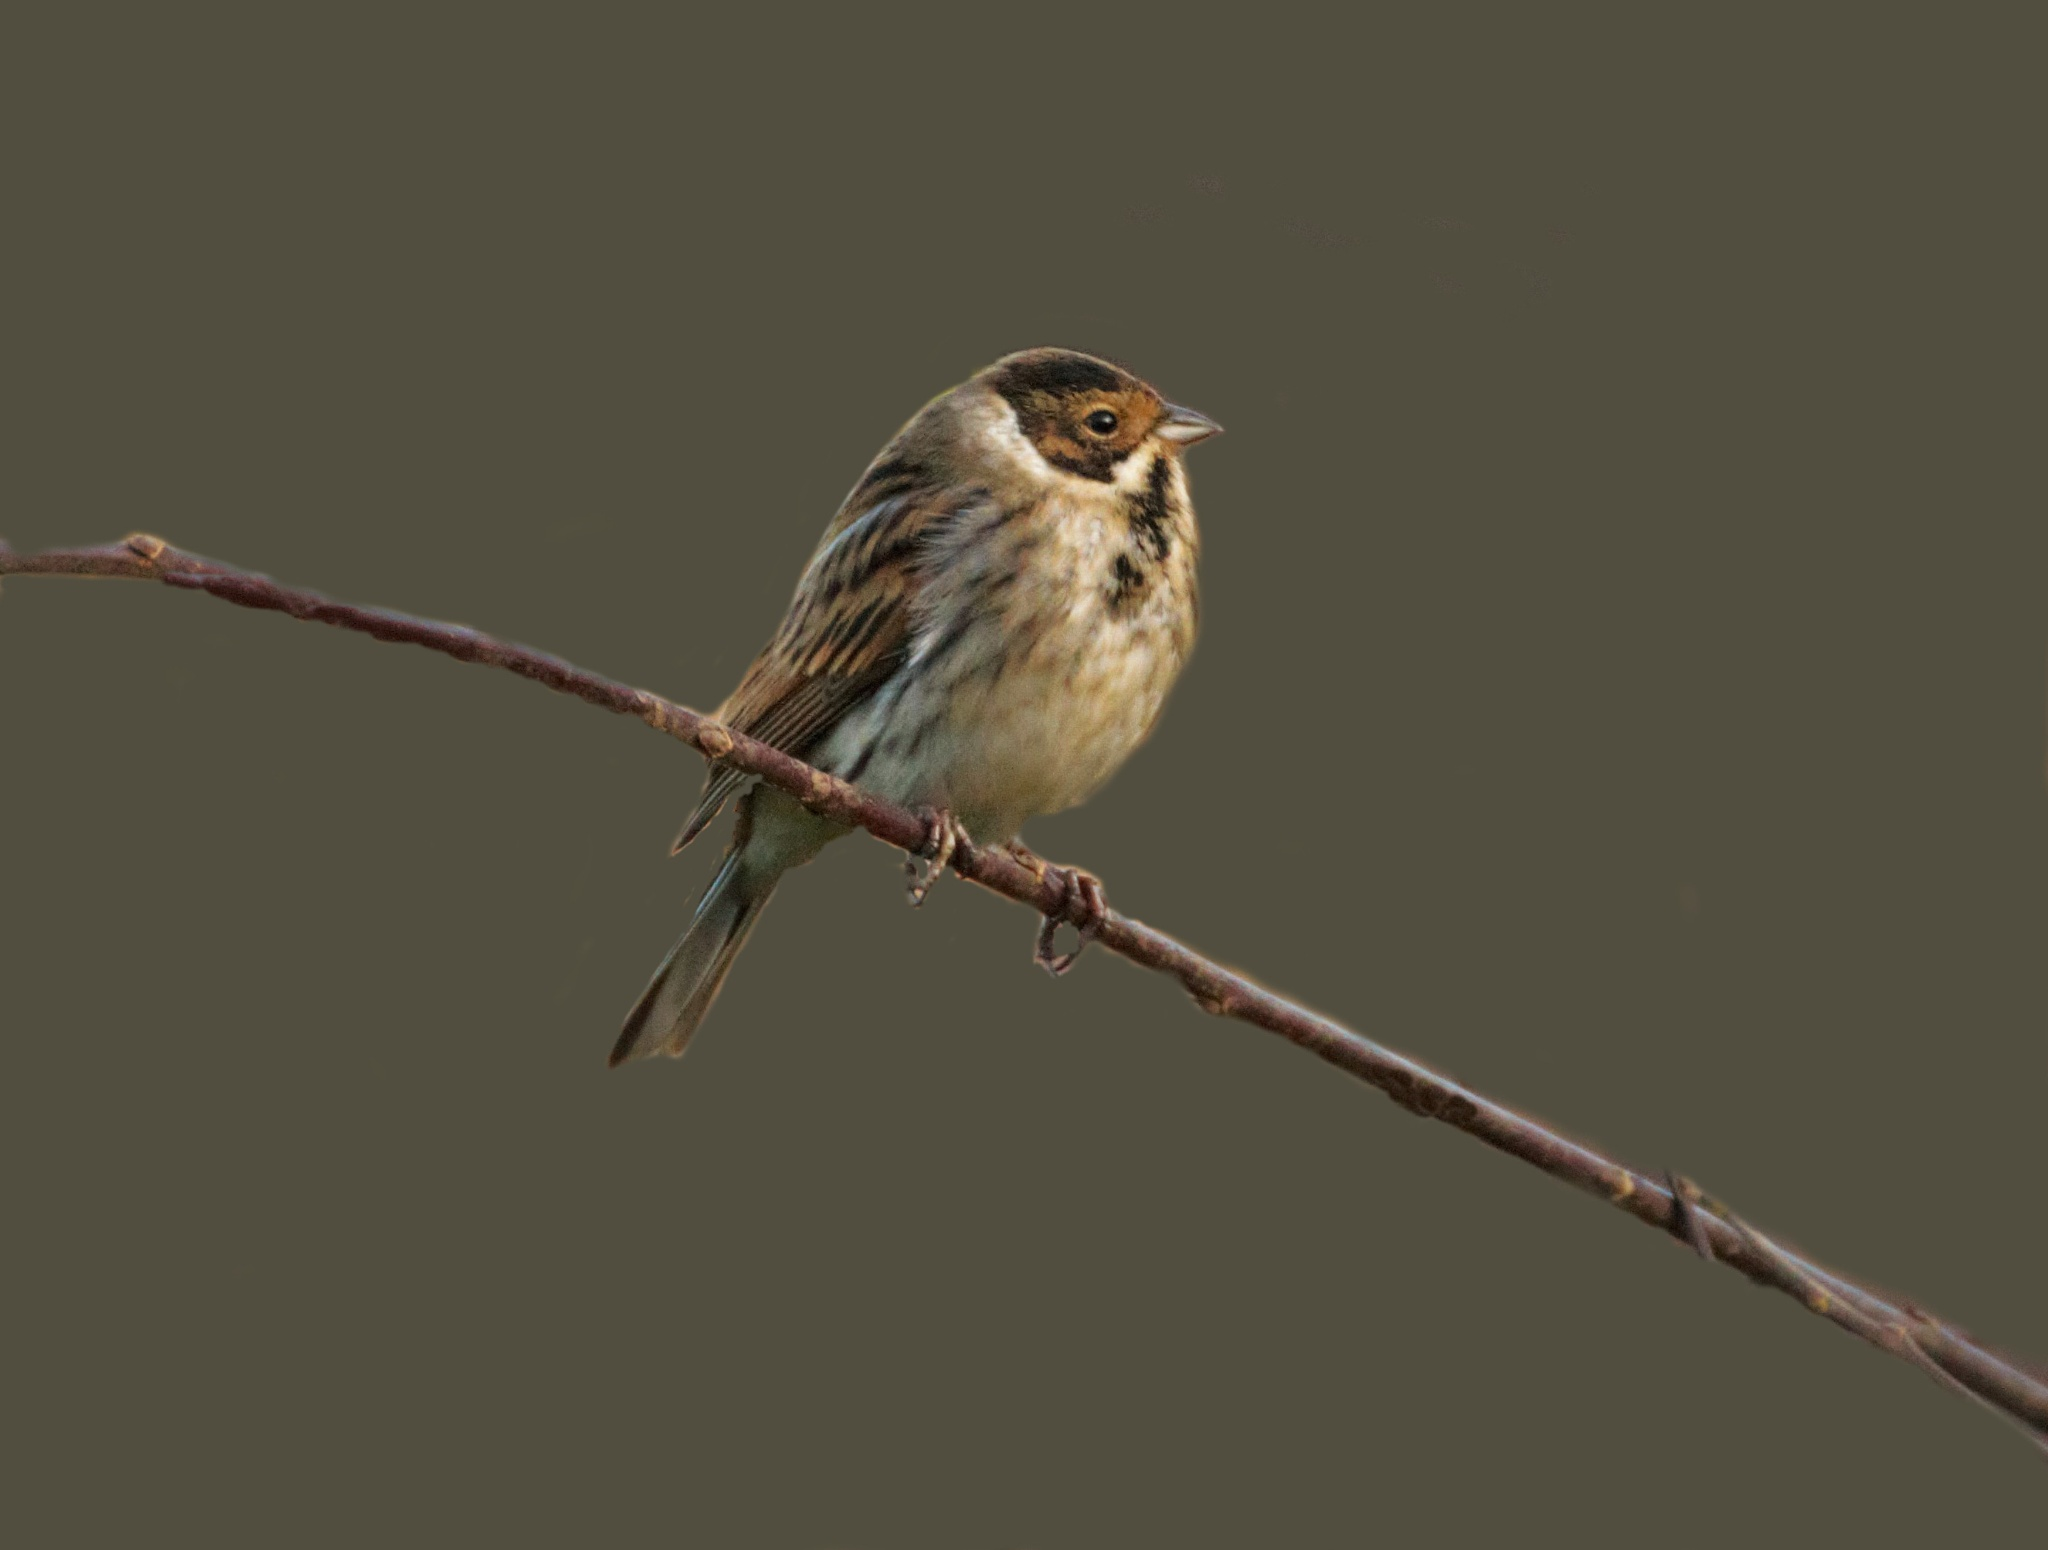 Female Reed Bunting. by sidoneill1